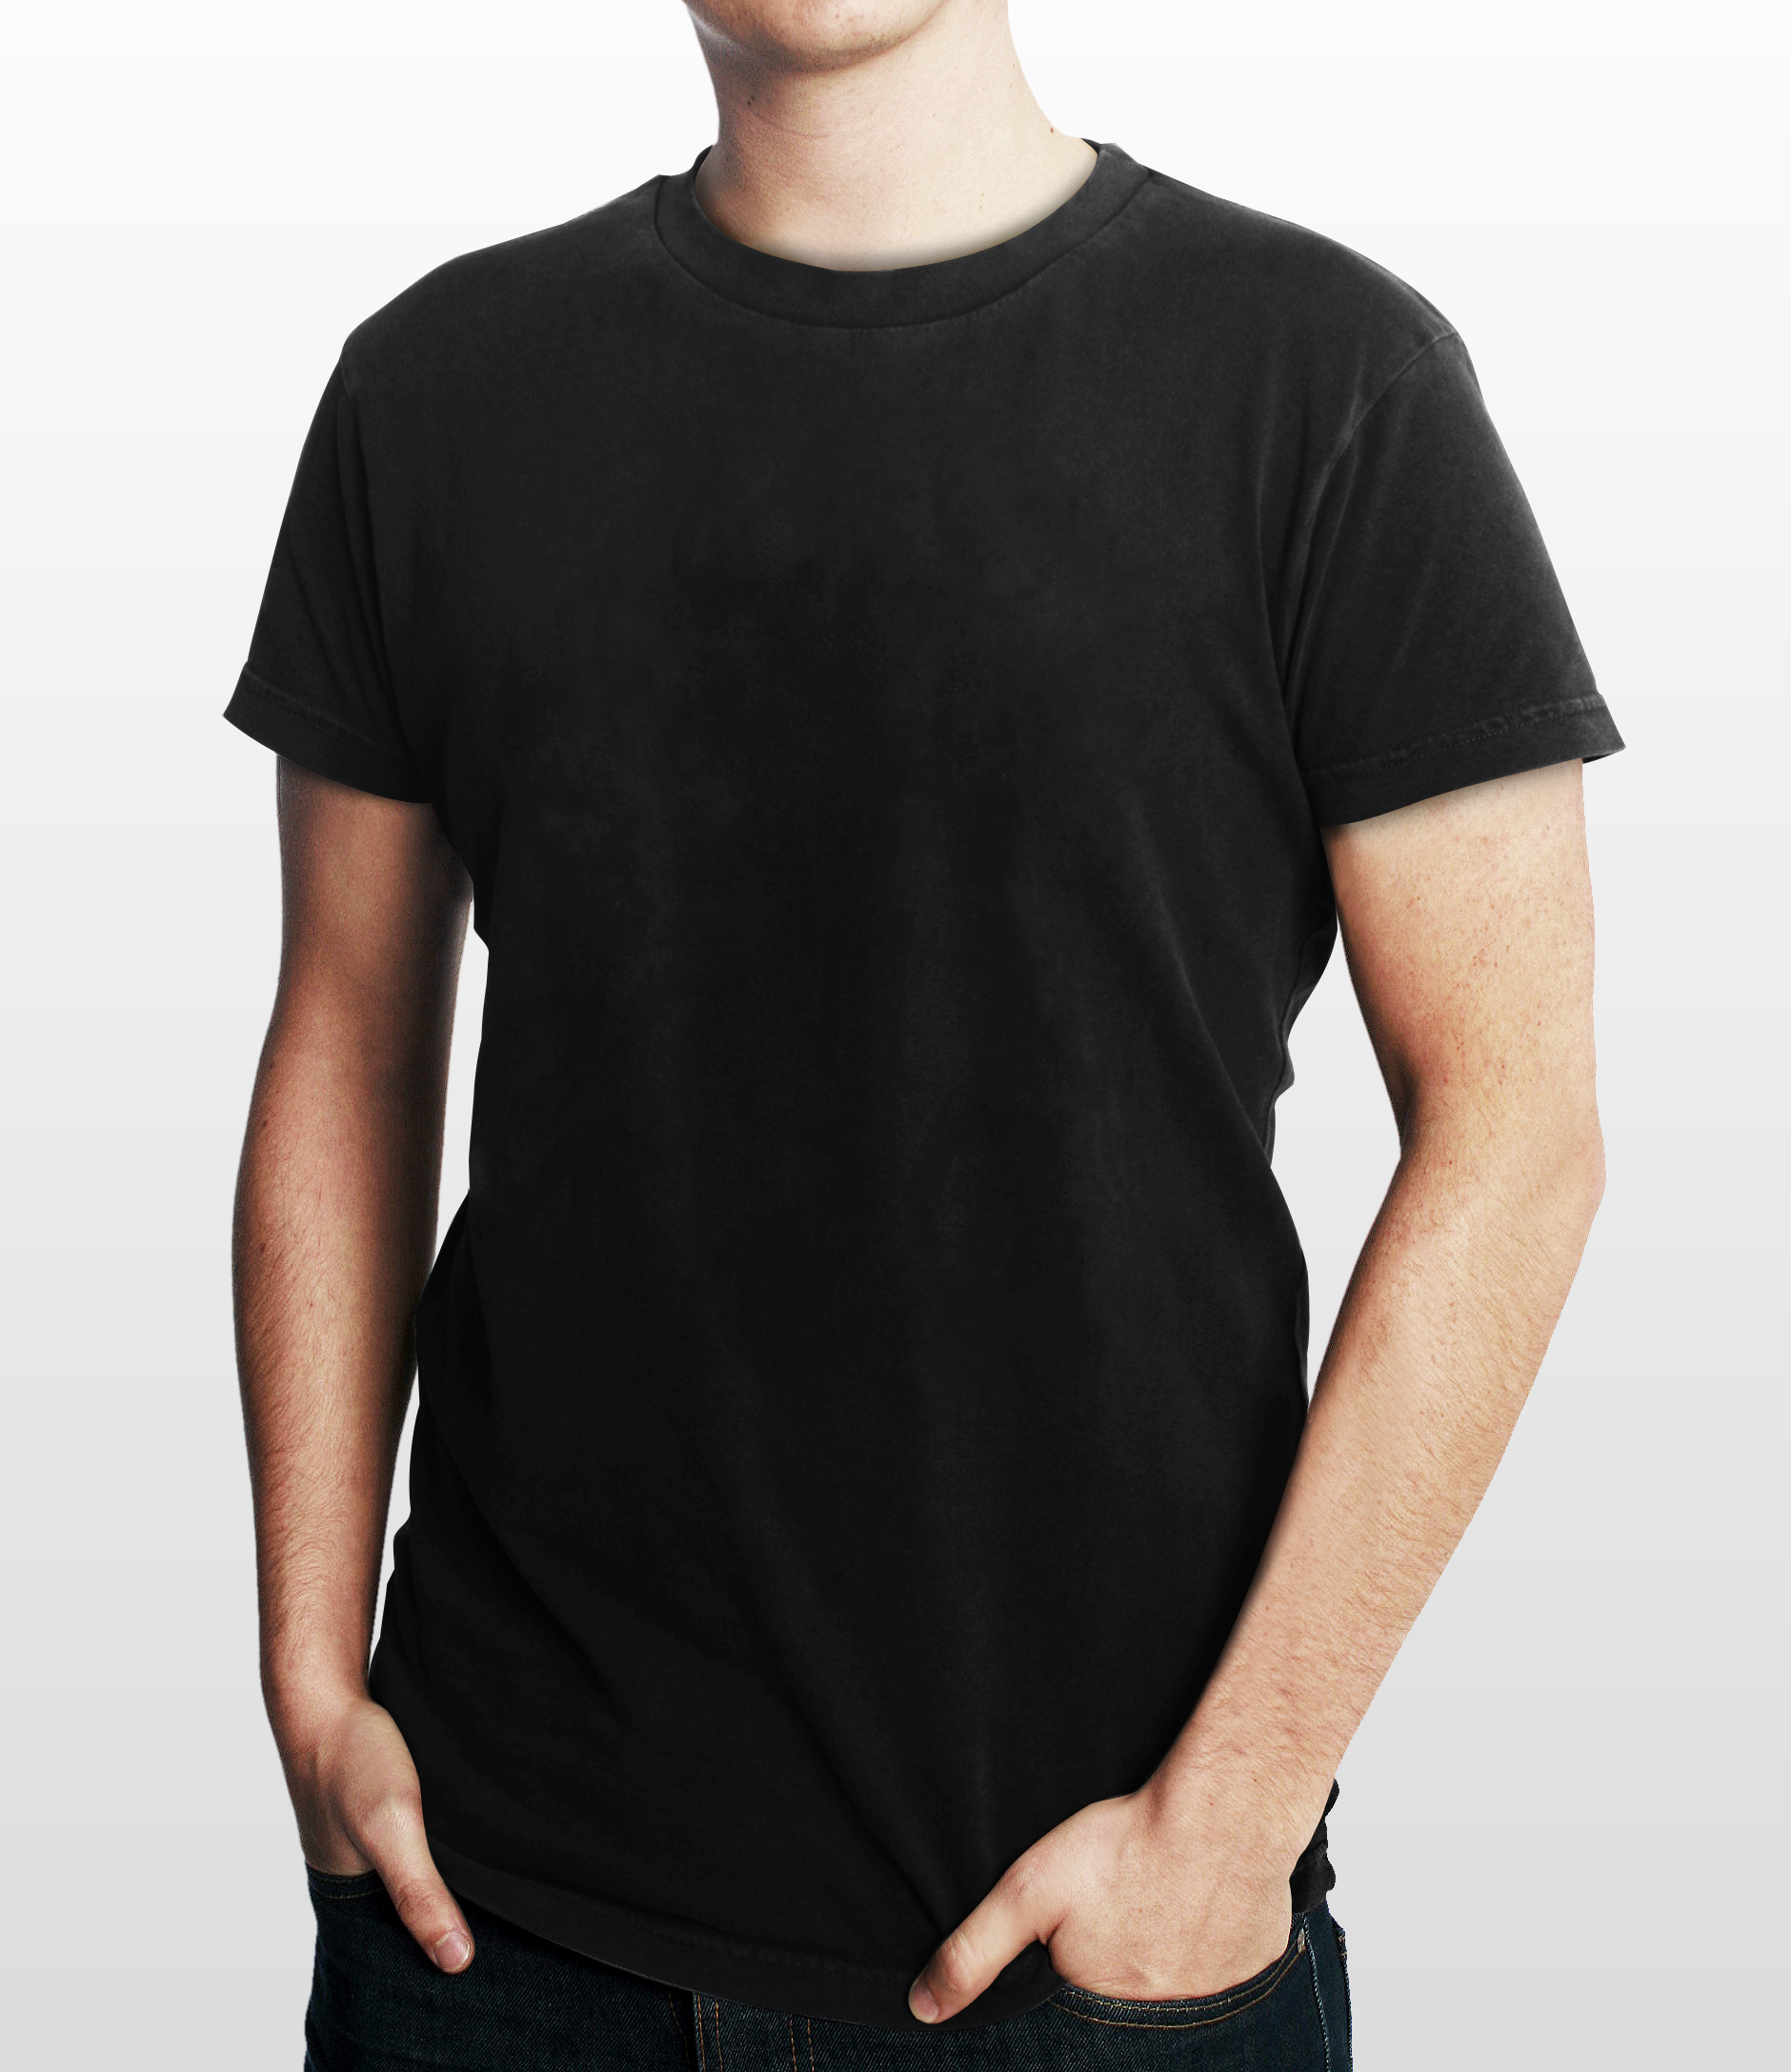 Images Of Black T Shirt Model Template Spacehero